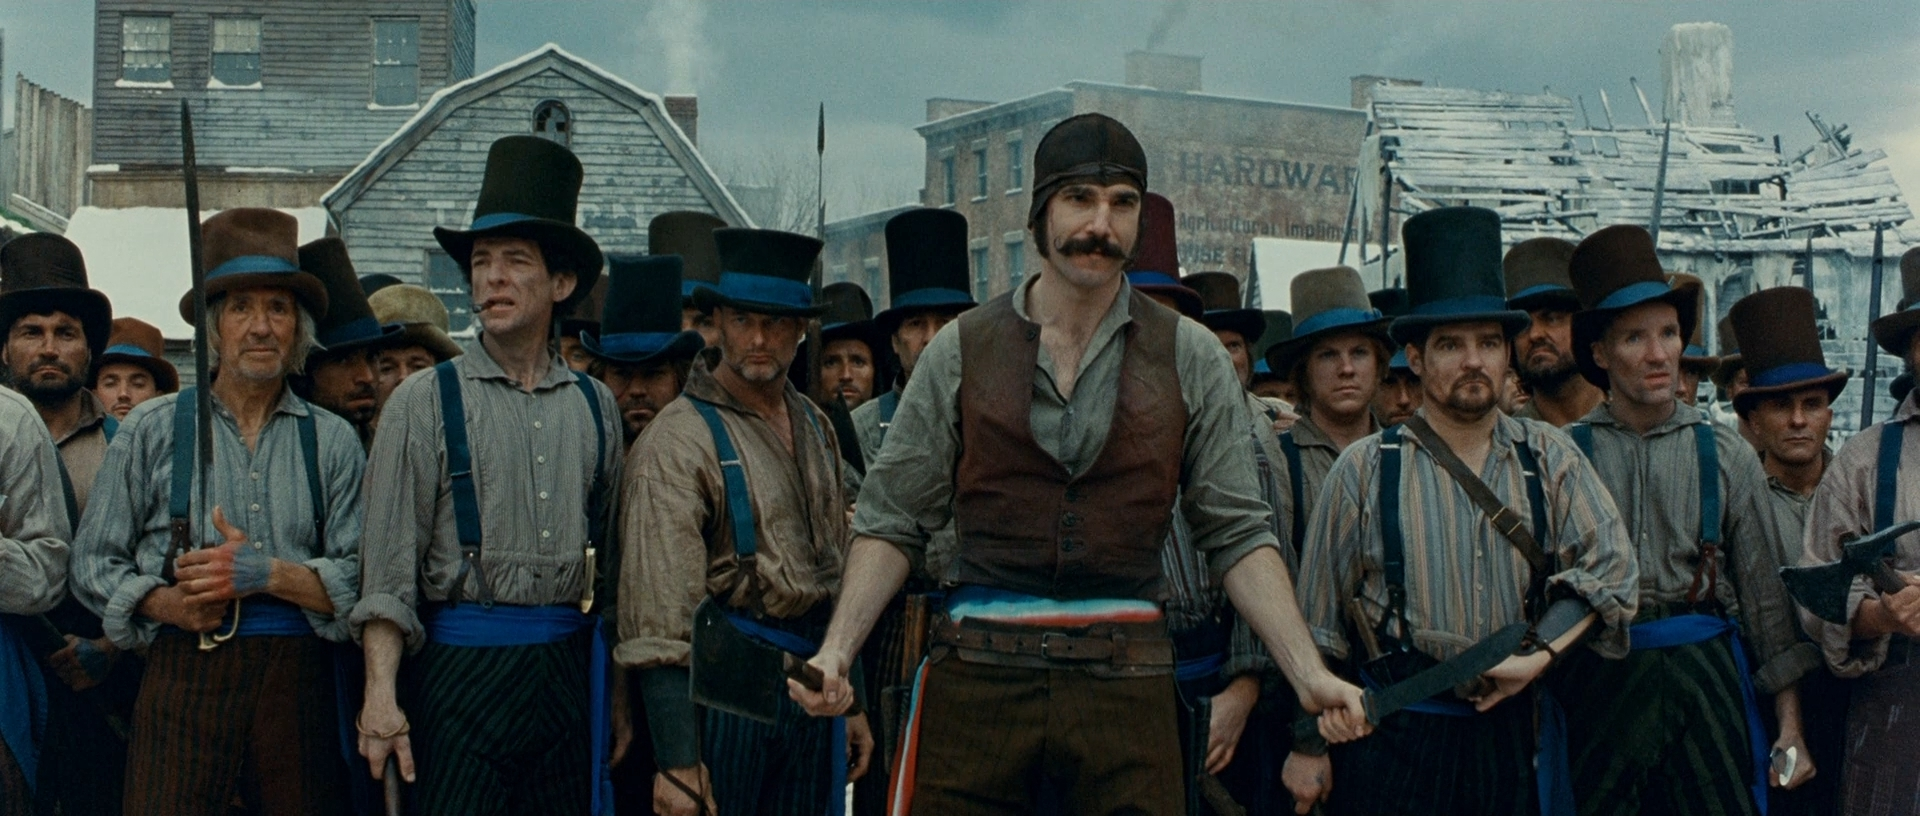 gangs of new york historical accuracy